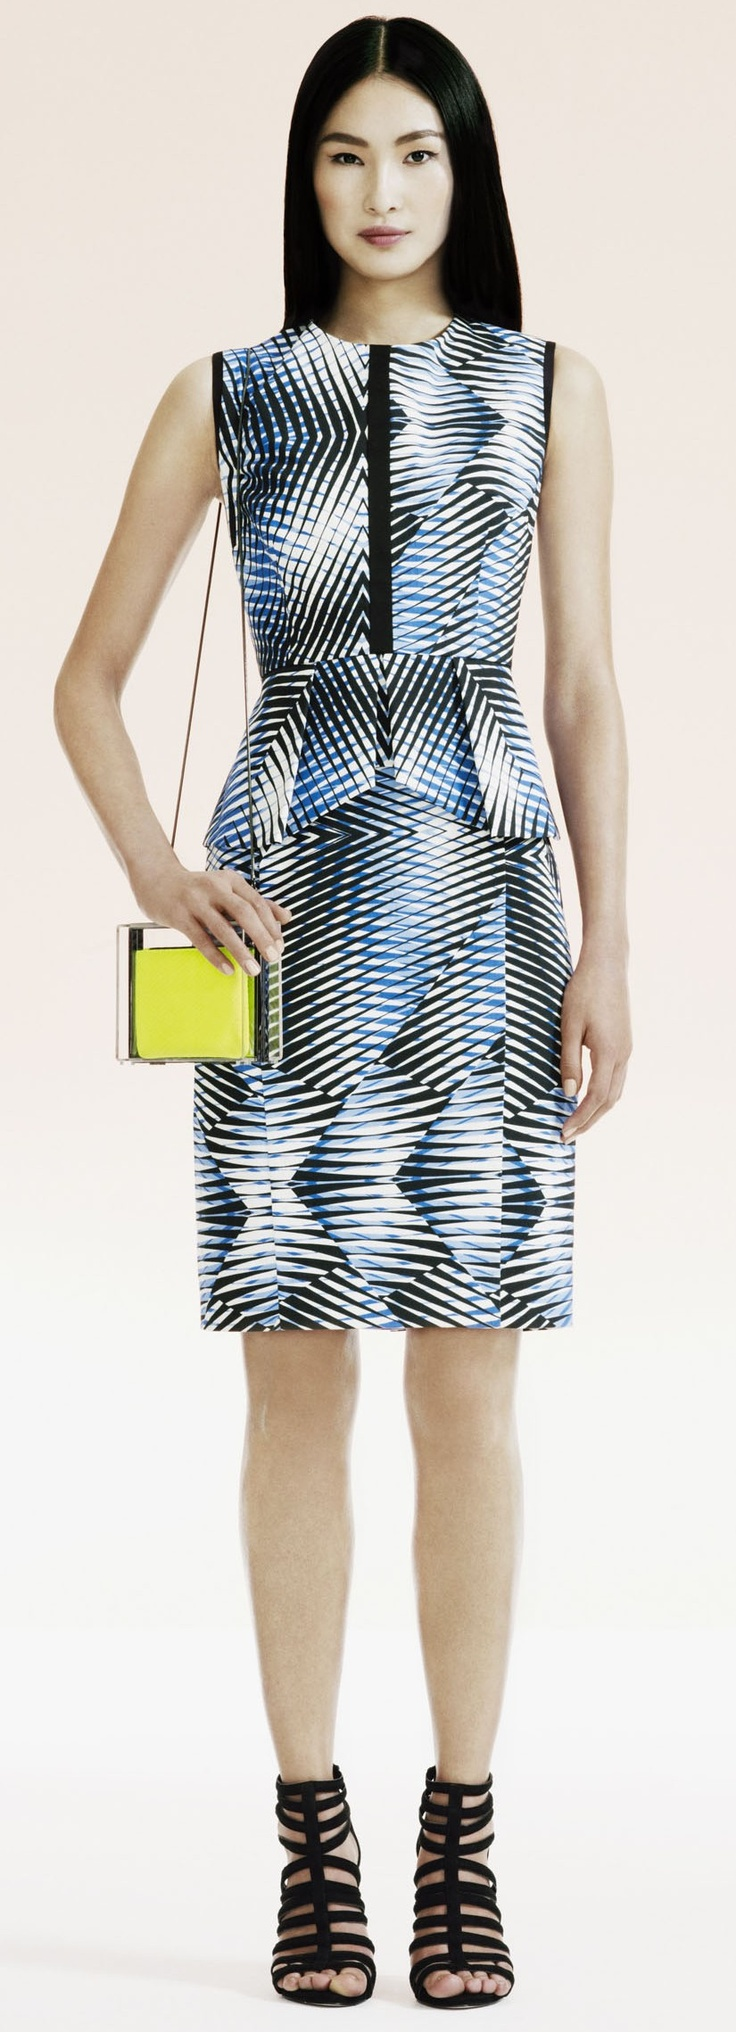 What are the best crossbody bags for travel? read article at http://boomerinas.com/2013/02/best-crossbody-bags-for-travel-women-over-40-50-60/